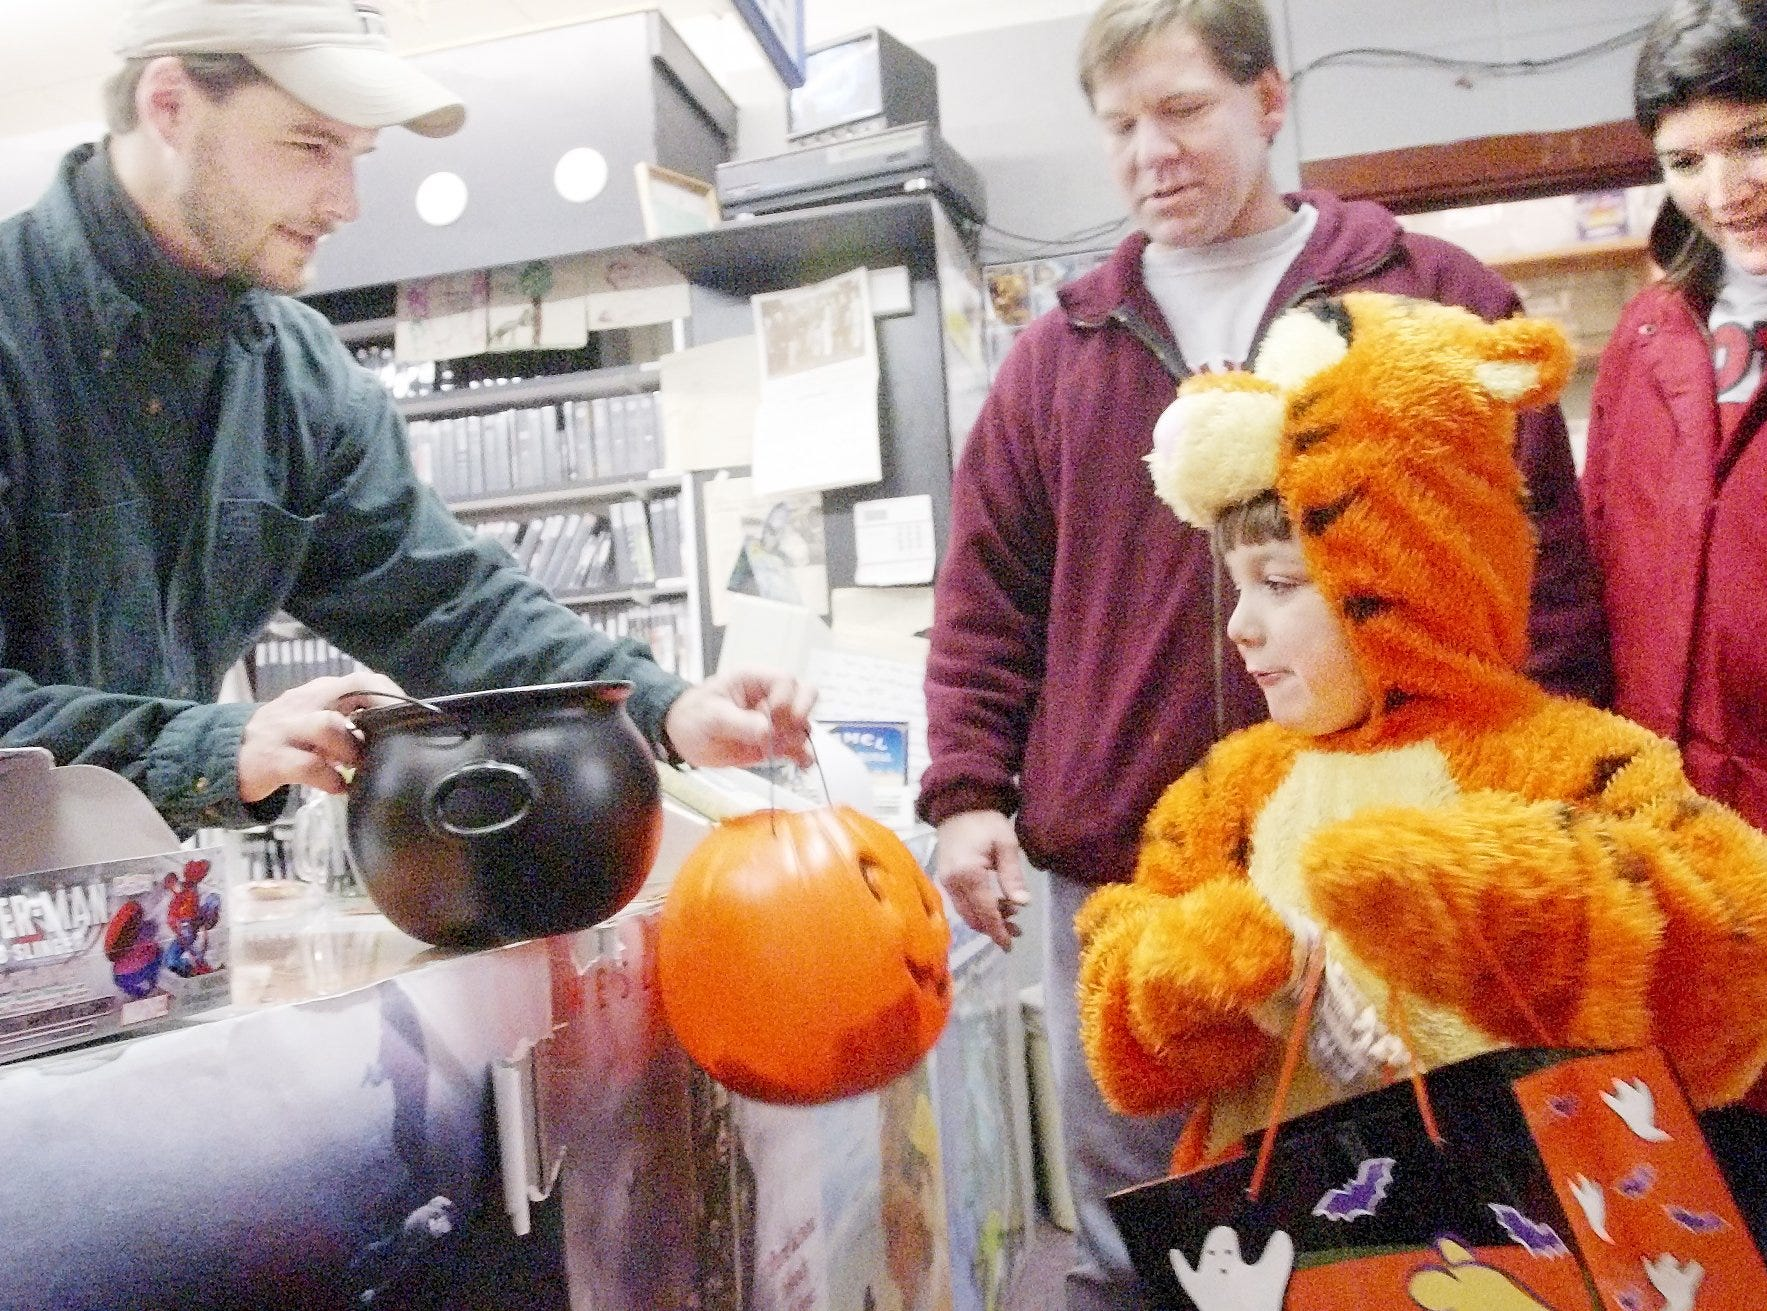 Jon Shufelt, left, owner of Groton's Village Video & DVD offers malted milk balls Thursday to Luke Lauchle, 5, who dressed up as Tigger for the Village of Groton trick-or-treat offered for Halloween by the downtown stores. Lauchle's parents, Lance and Terri look on.